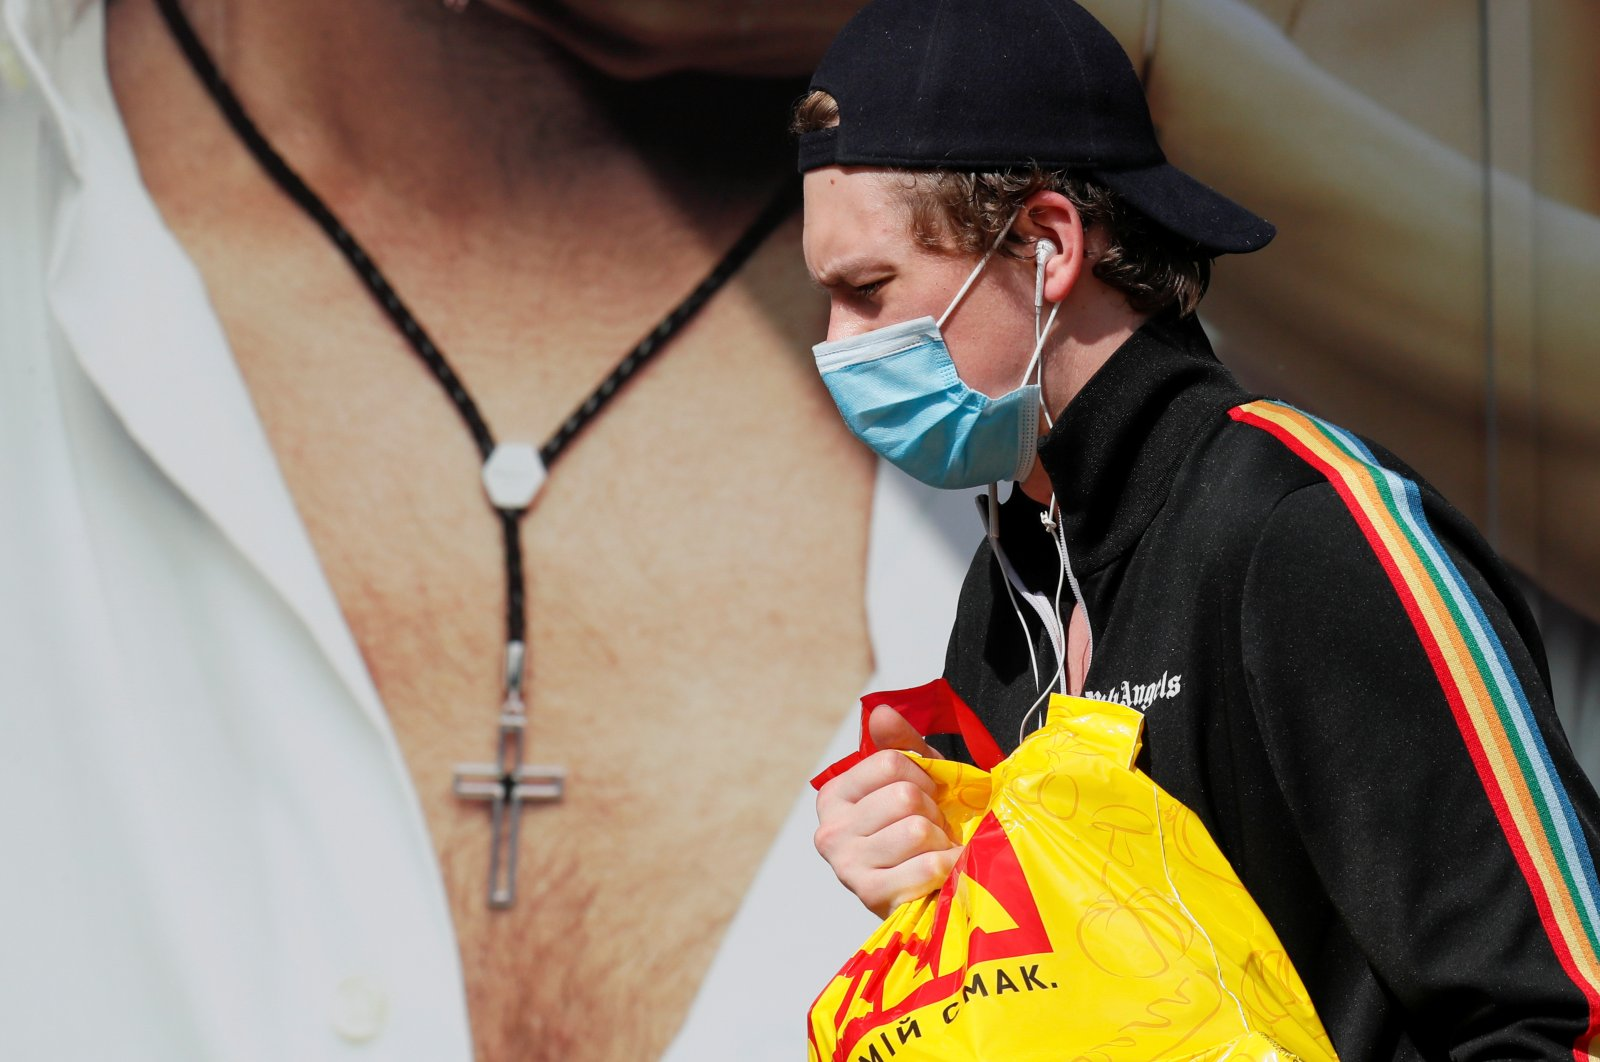 A man wearing a protective face mask amid the coronavirus outbreak walks in a street in central Kyiv, Ukraine, June 22, 2020. (Reuters Photo)